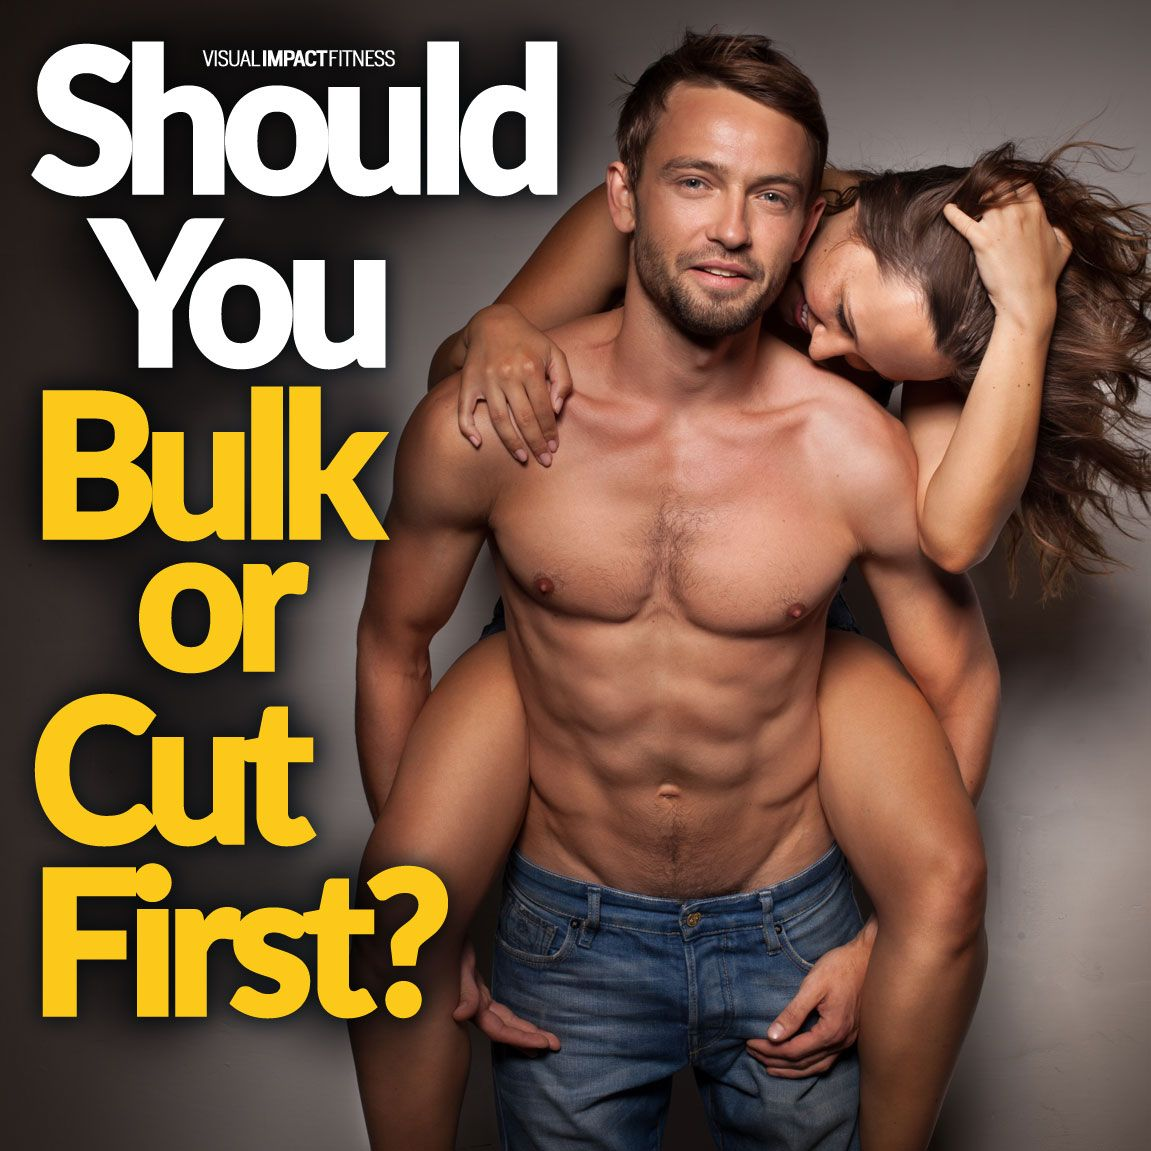 Should You Bulk or Cut First? Here's What to Look For